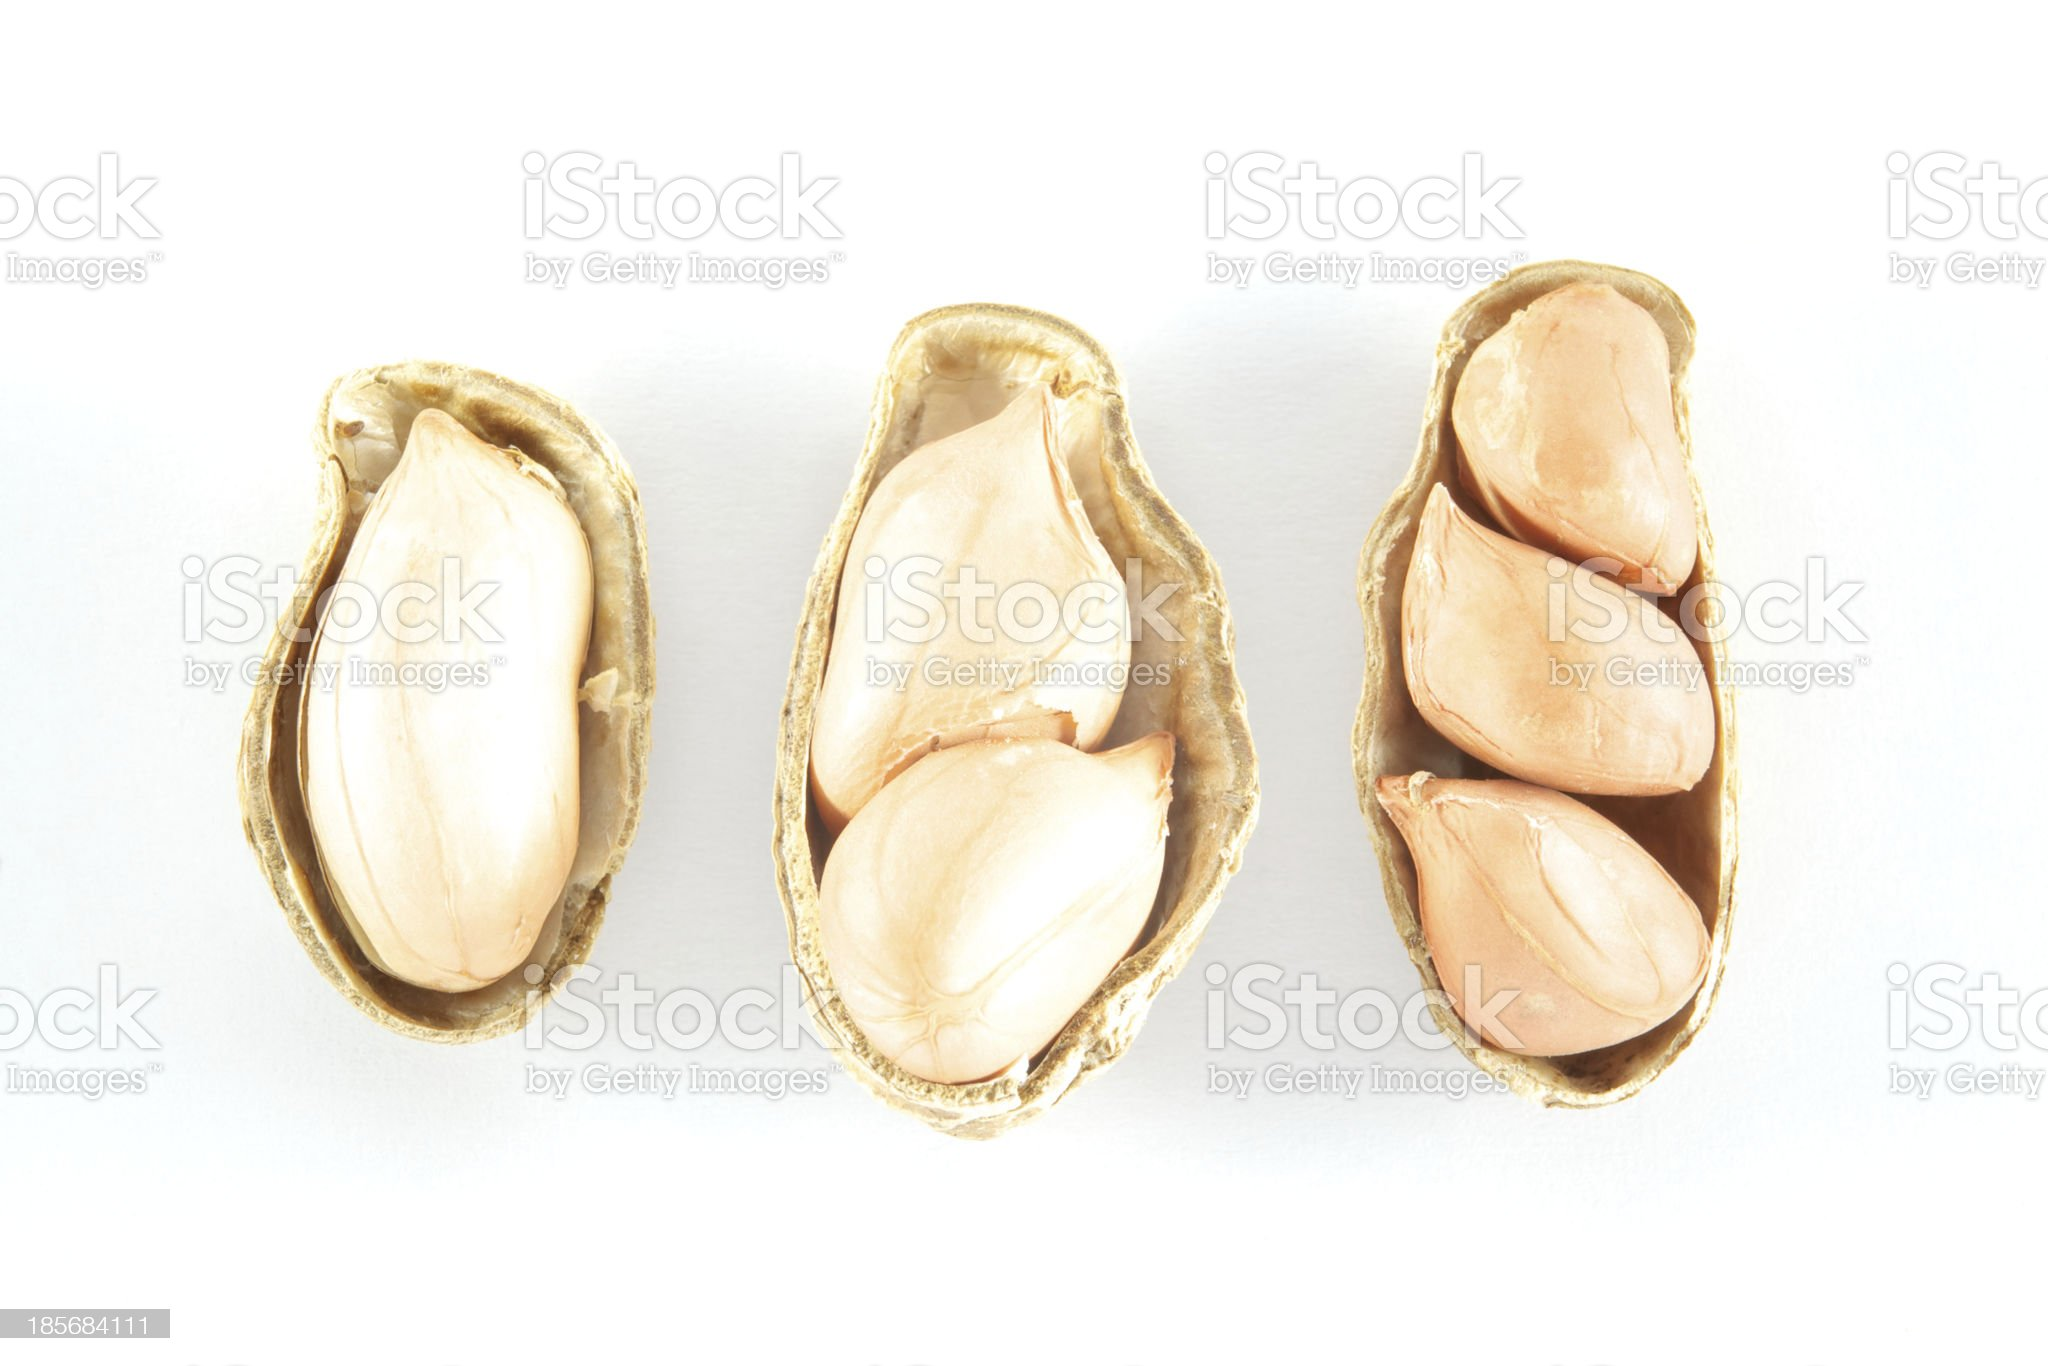 Peanuts 123 royalty-free stock photo